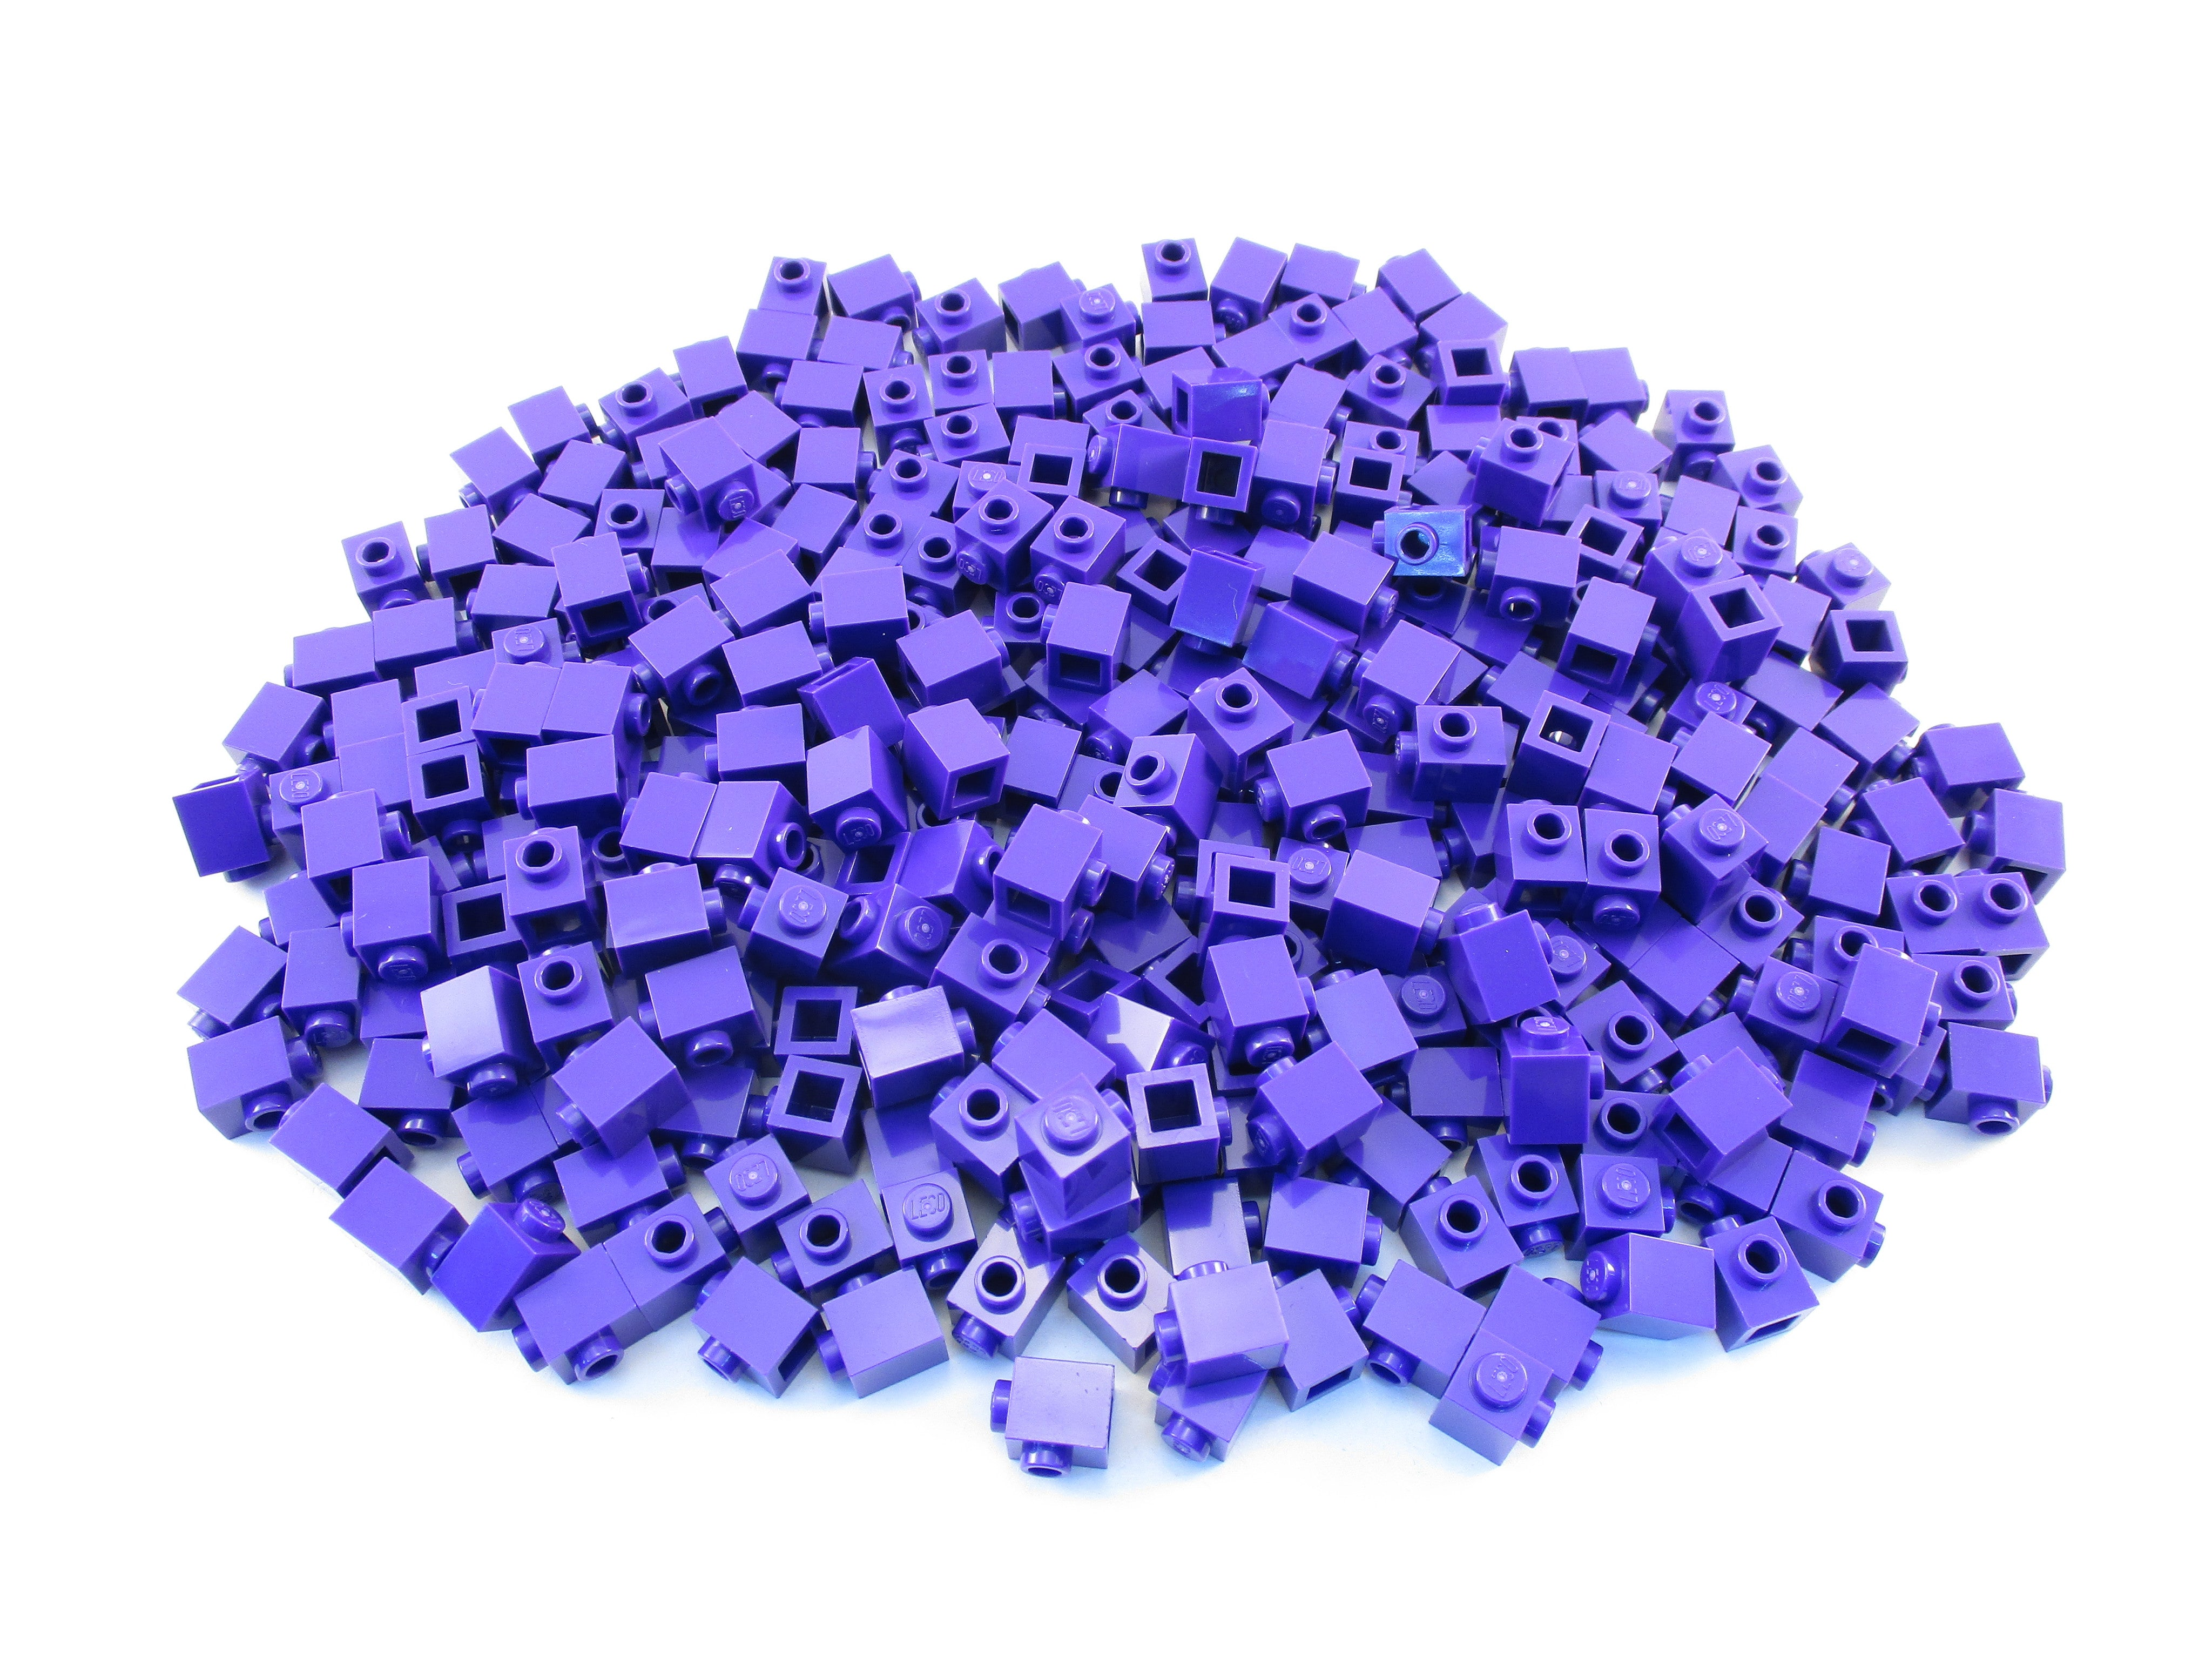 LEGO Dark Purple Brick Modified 1x1 Stud on 1 Side Lot of 100 Parts Pieces 87087